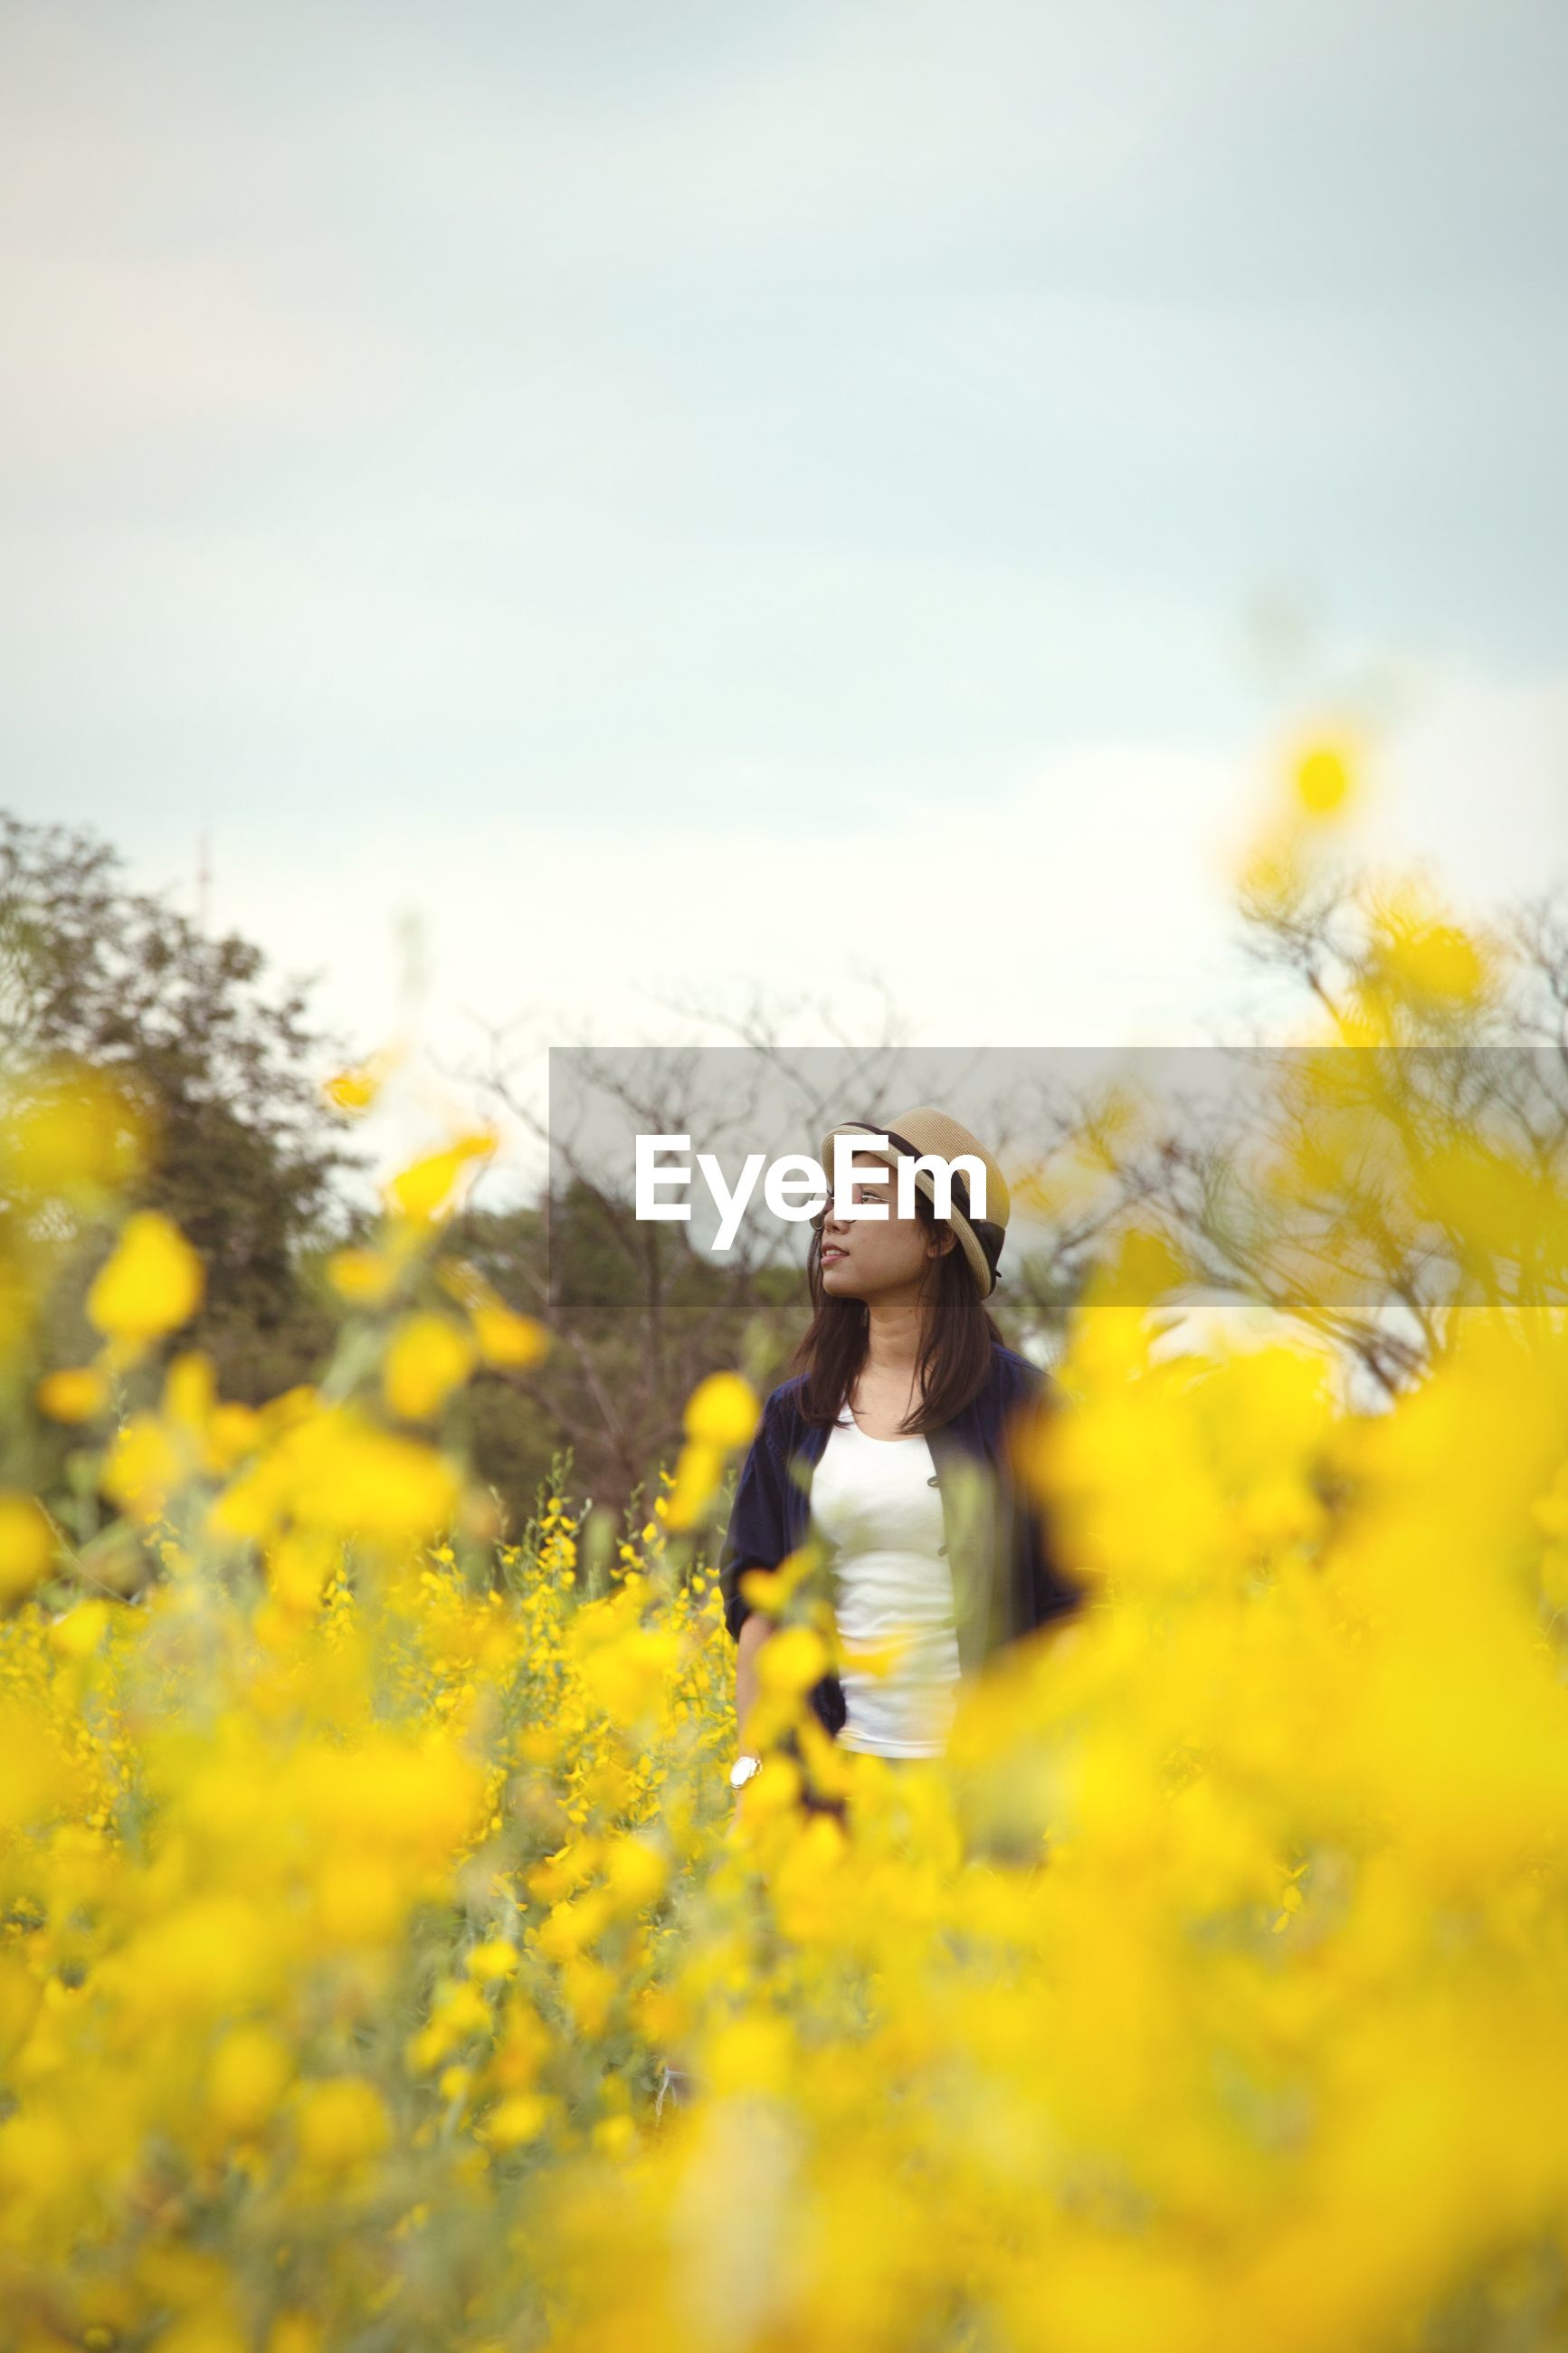 Woman looking away while standing amidst yellow flowers on field